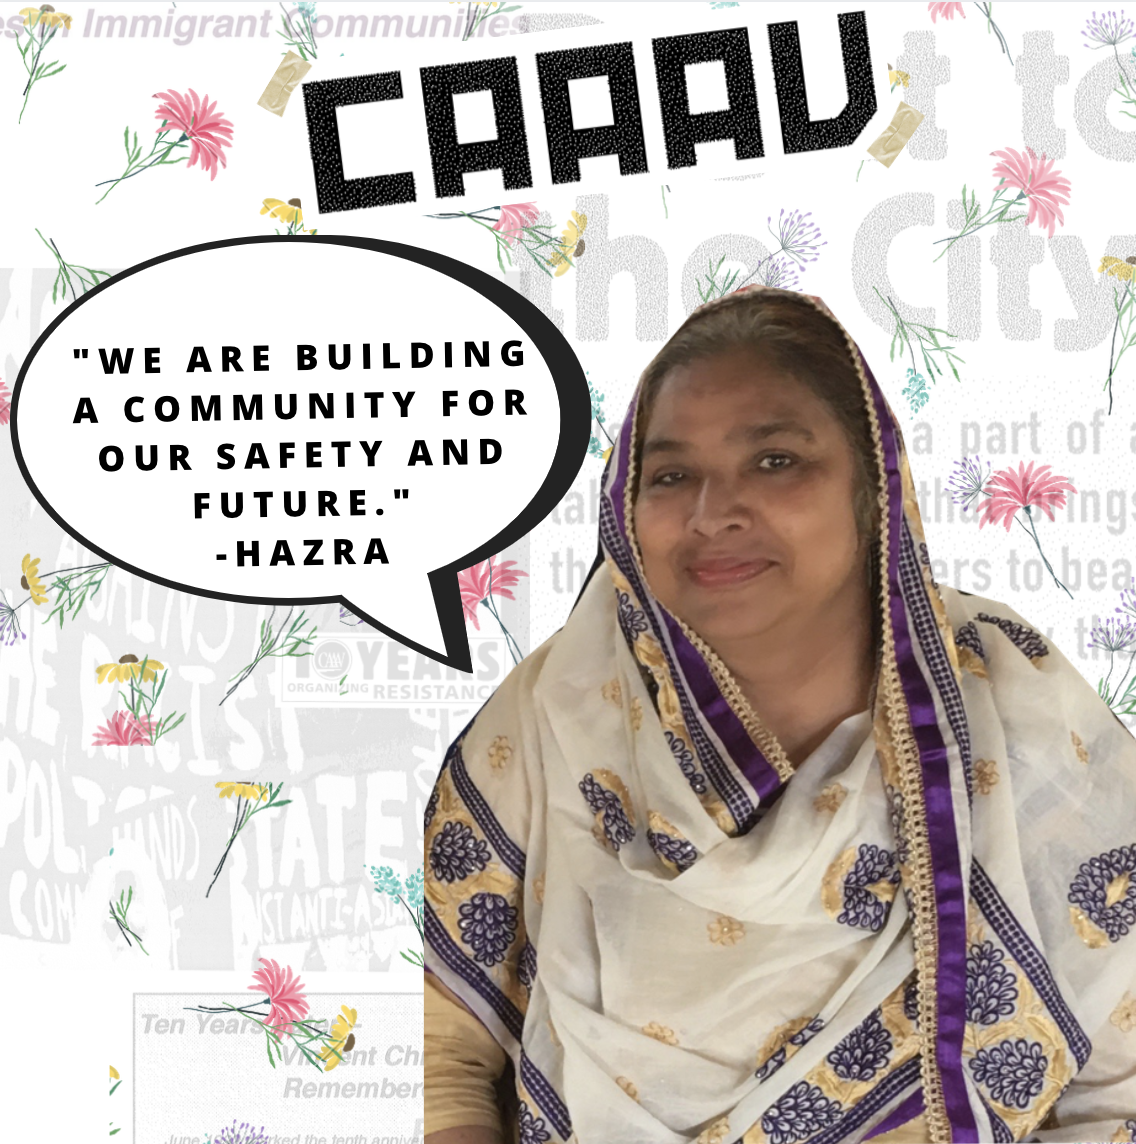 Hazra standing against a collage background, next to her speech bubble. she is smiling